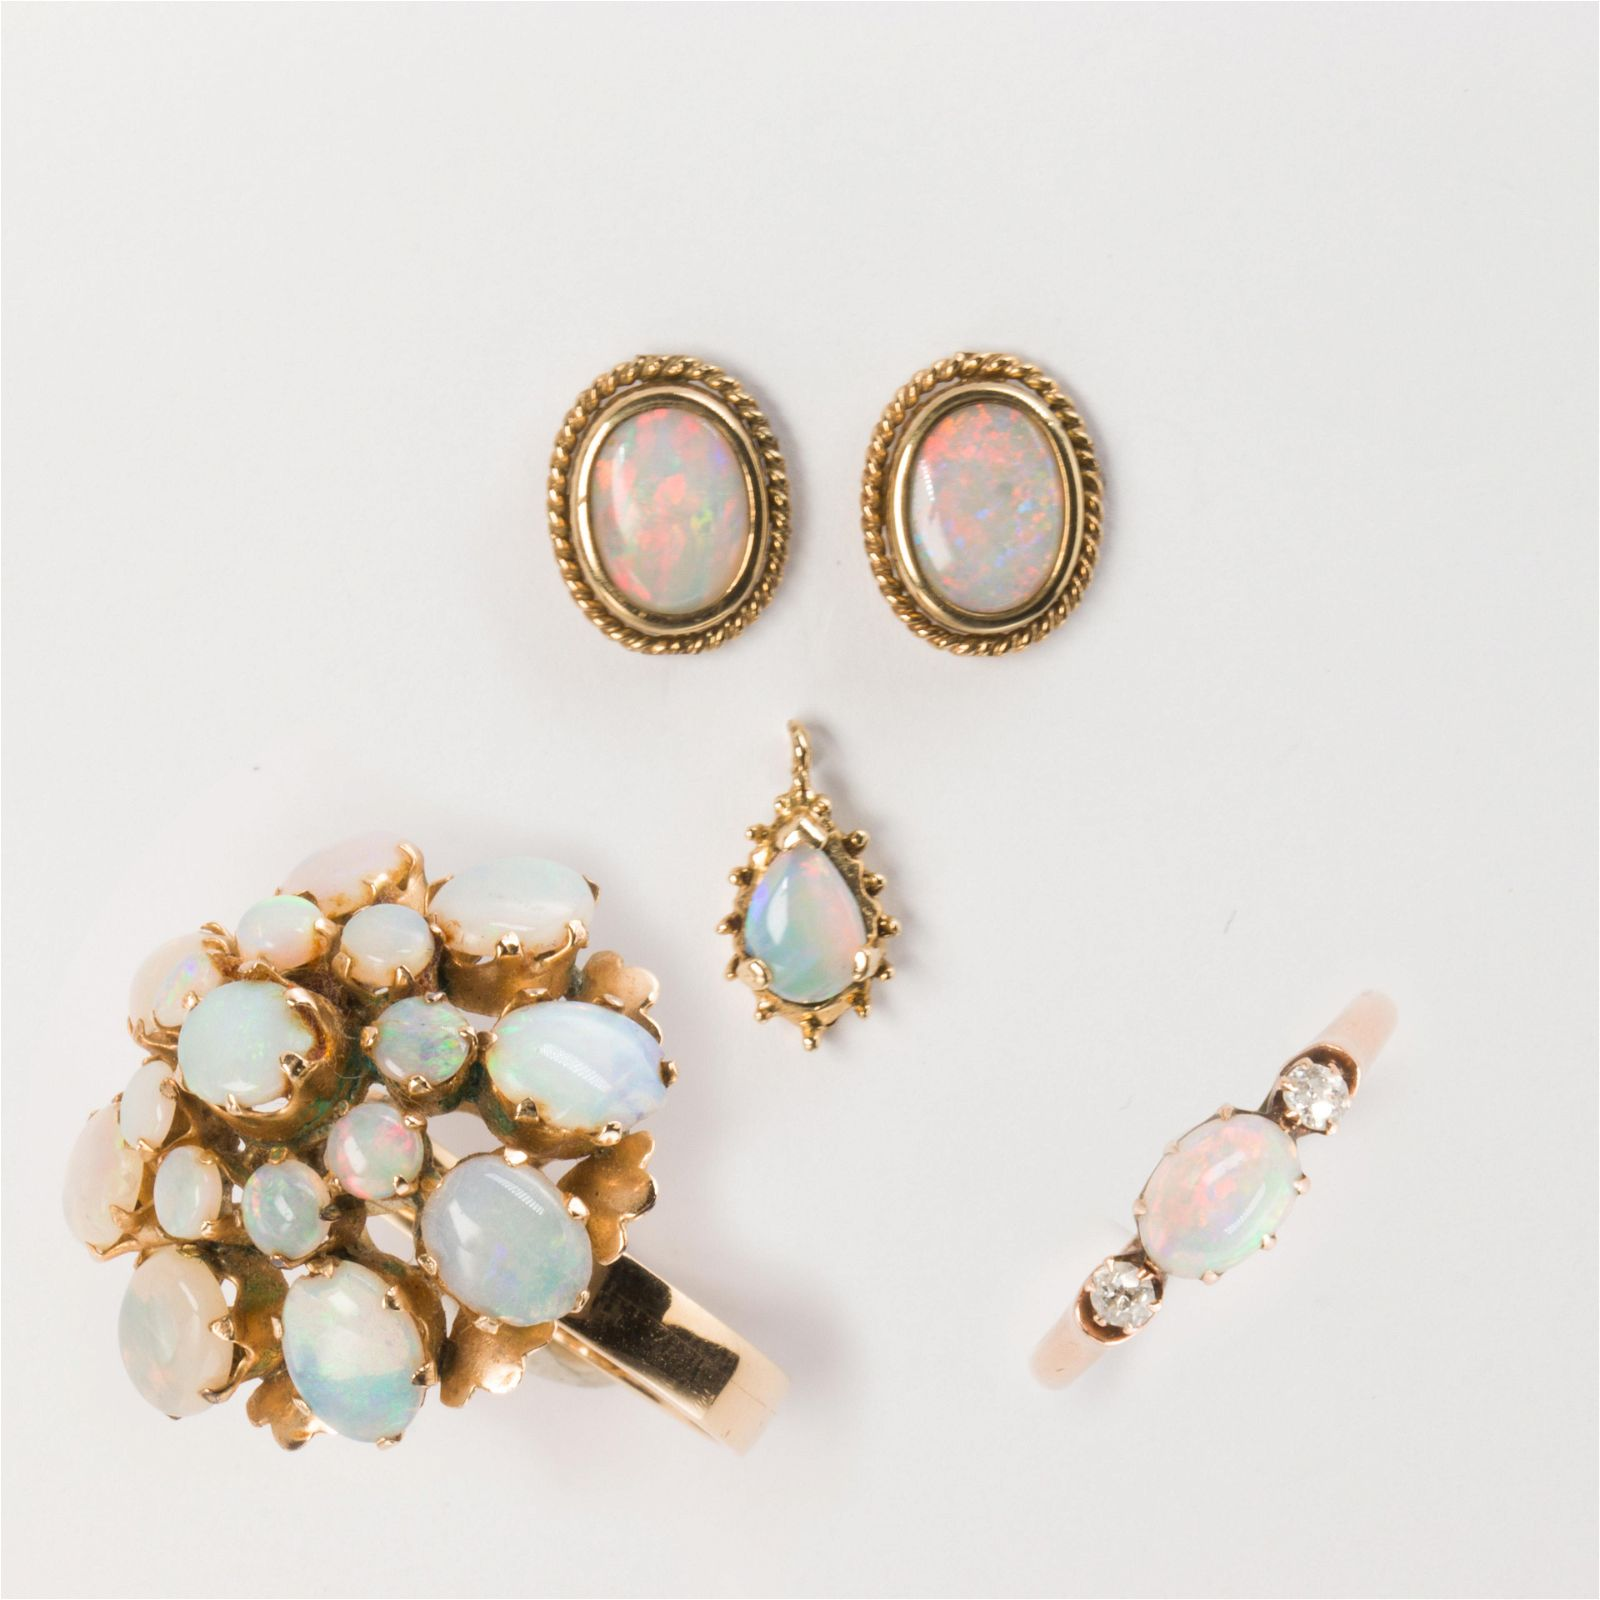 A group of opal and gold jewelry